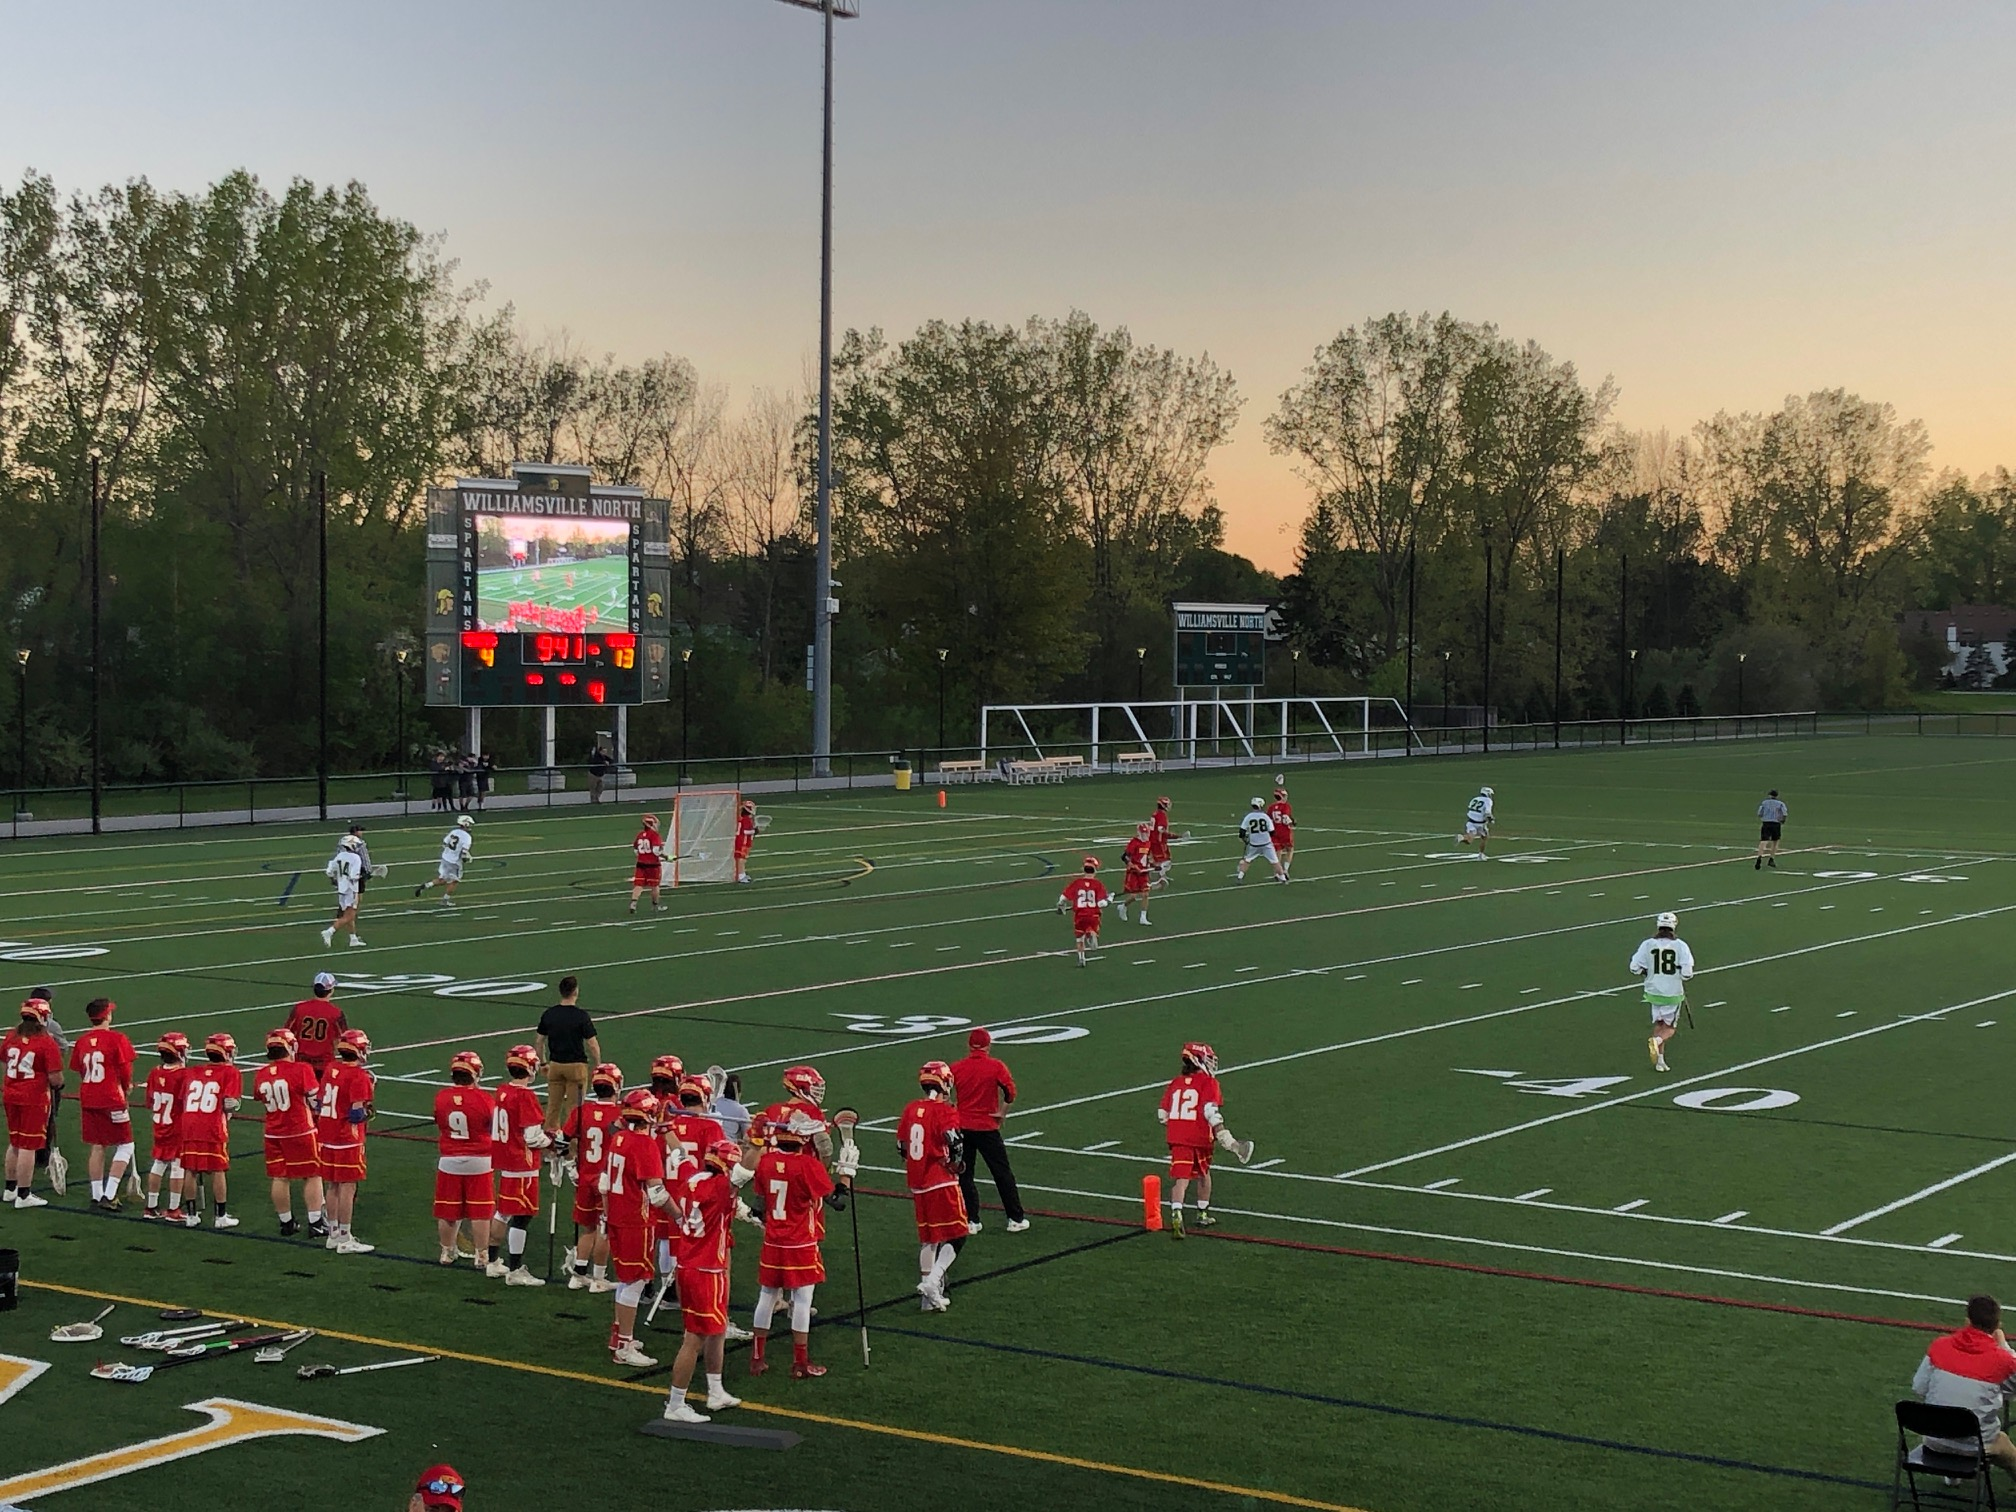 Flames Avenge Mid-season Loss To Spartans, Advance to Sectional Final